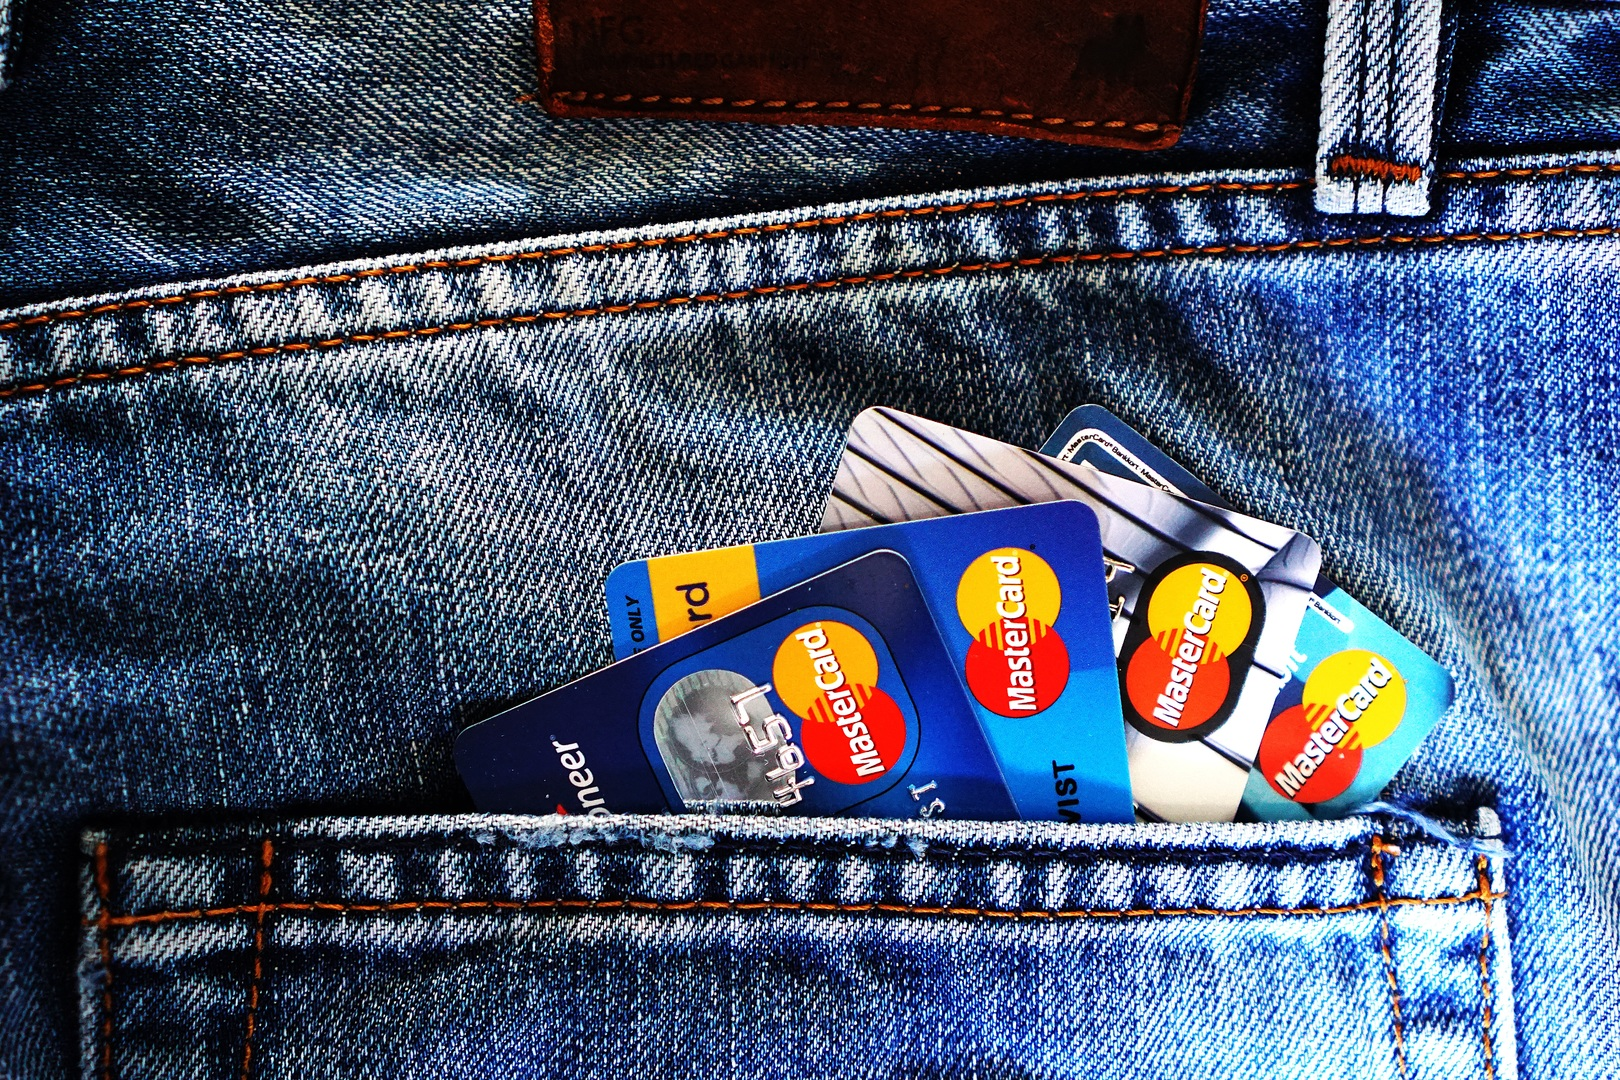 What would a cashless economy mean for the environment?